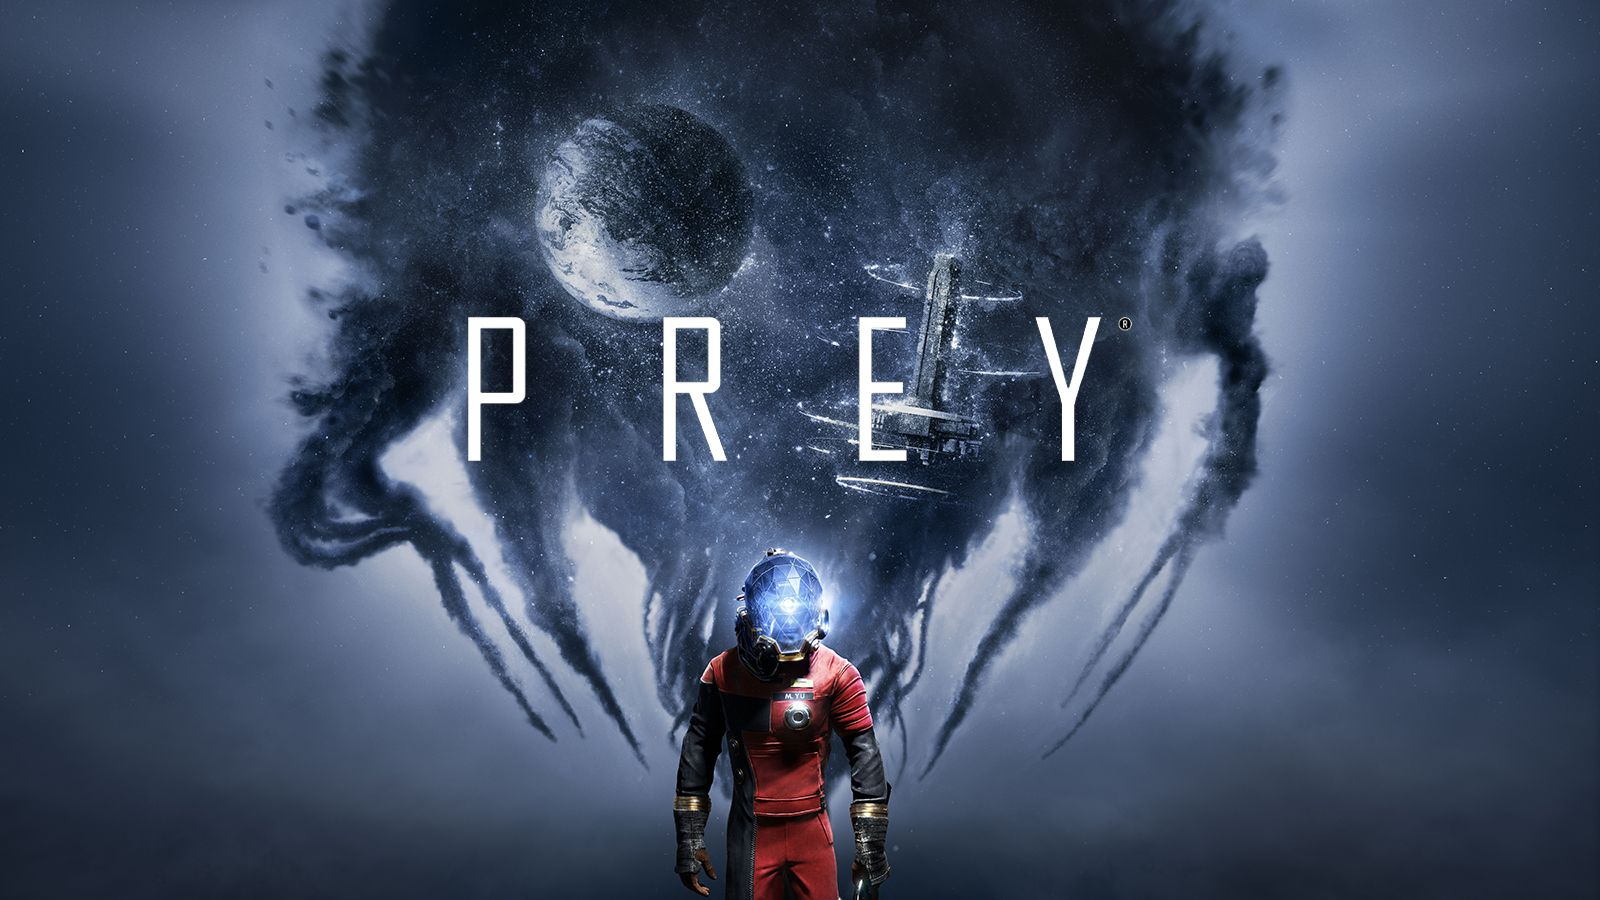 A review of the game Prey: all is not what it seems